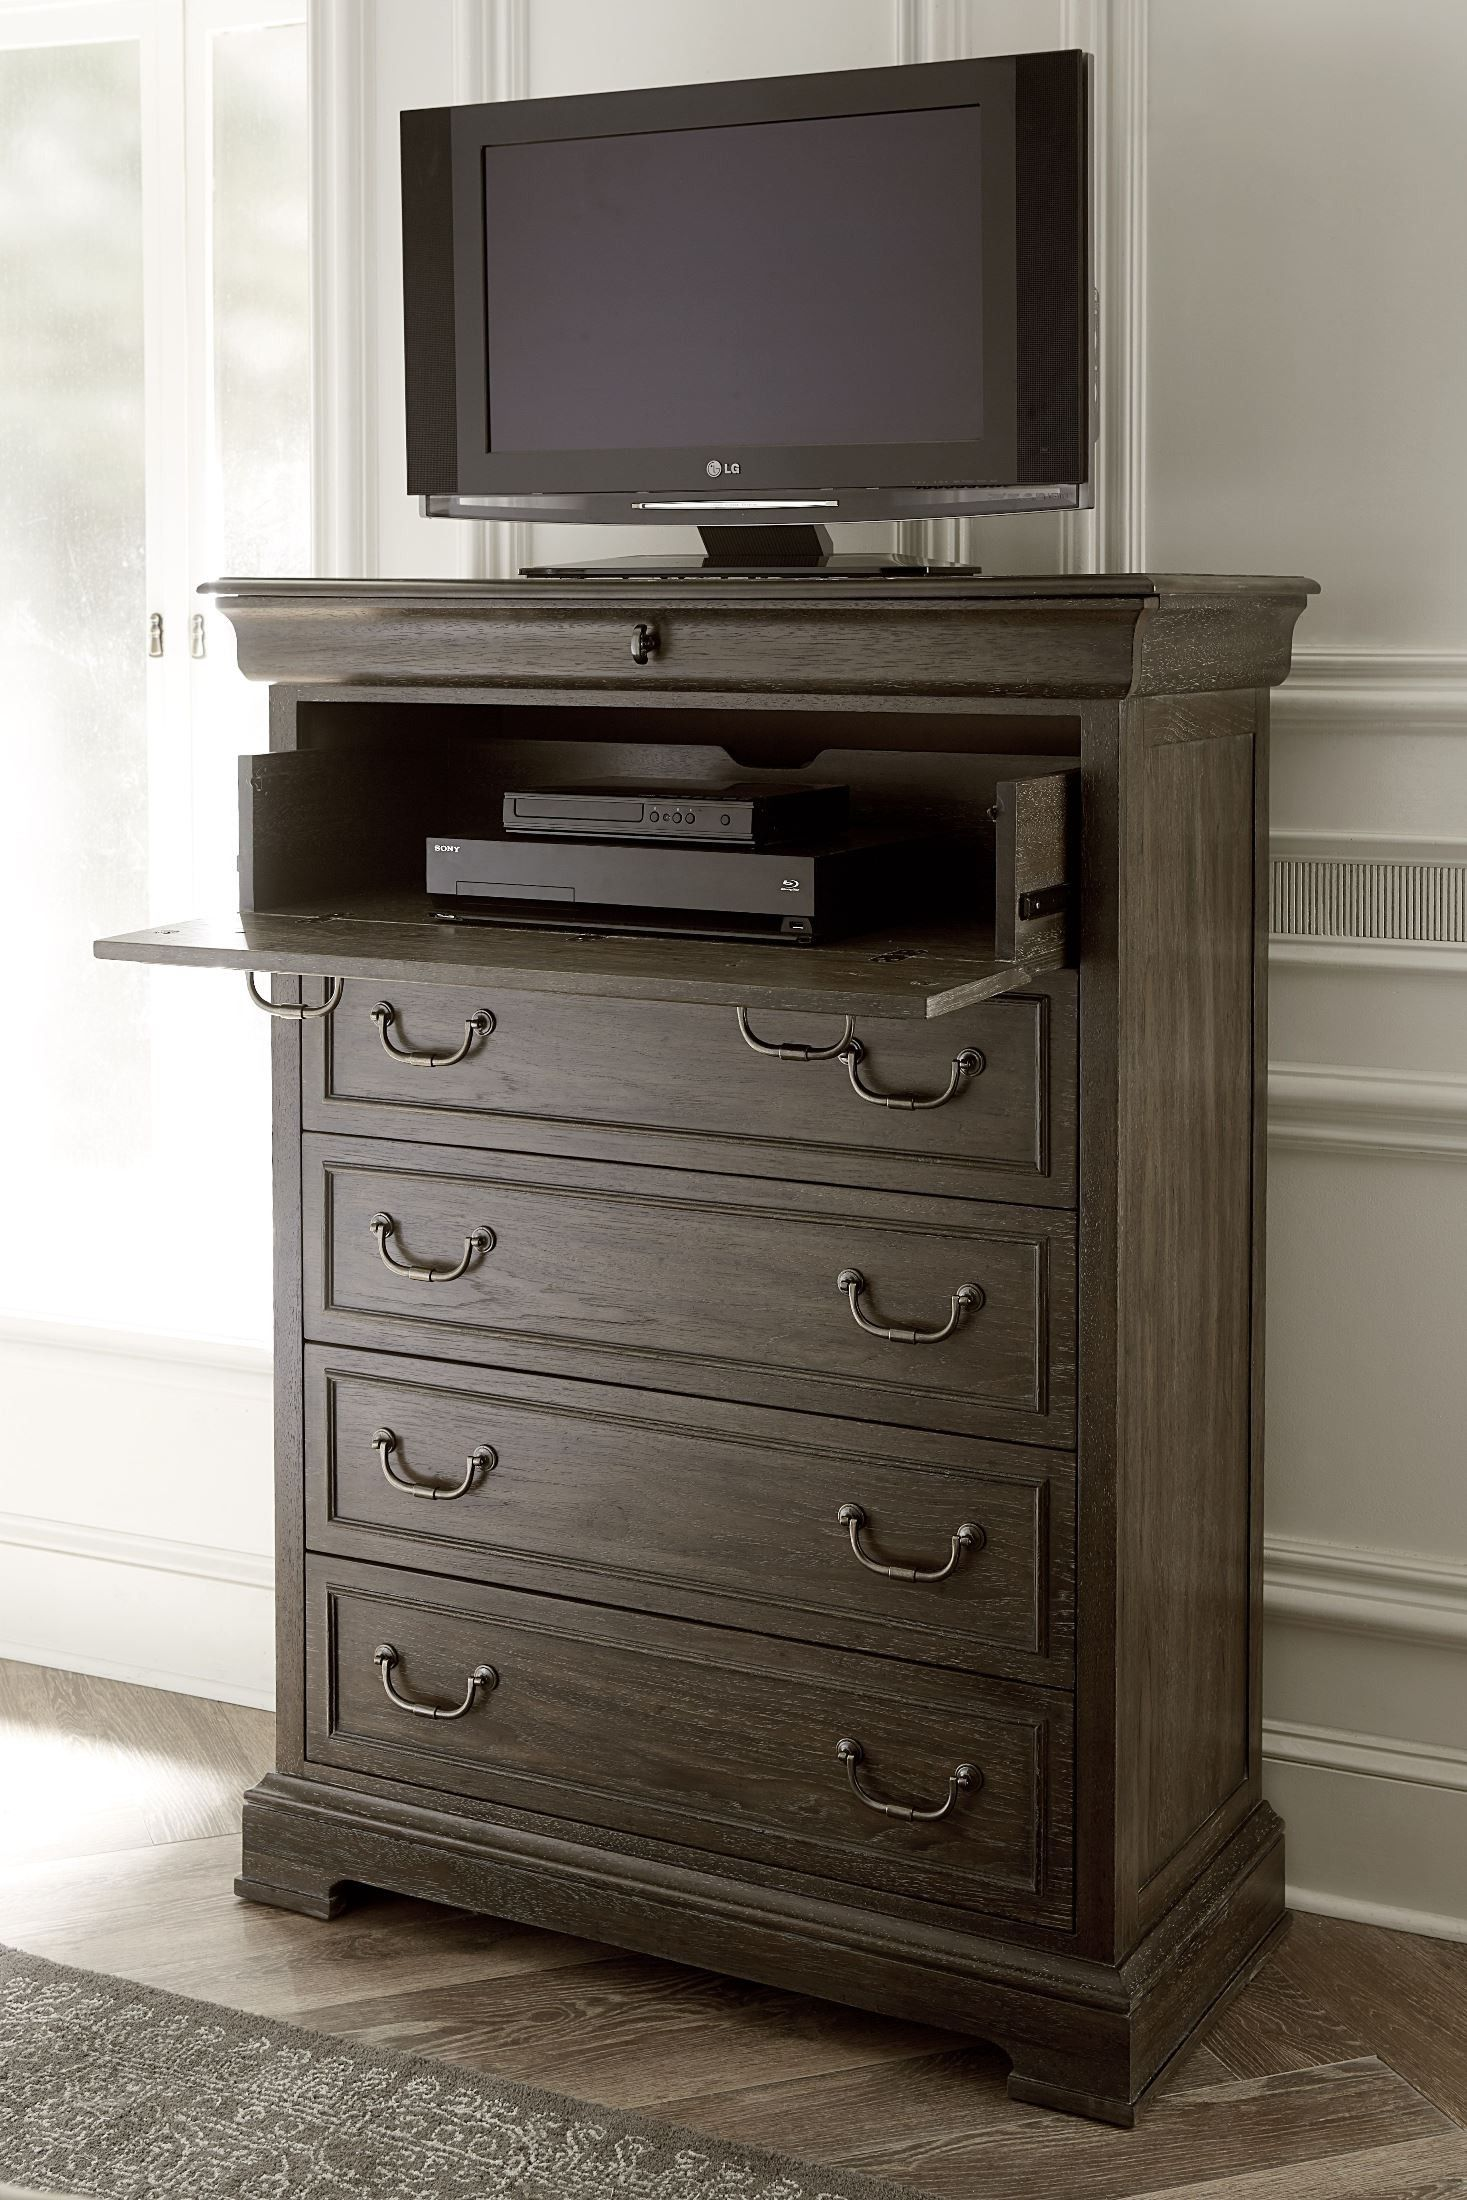 St. Germain Drawer Chest Dresser with tv, Purchase